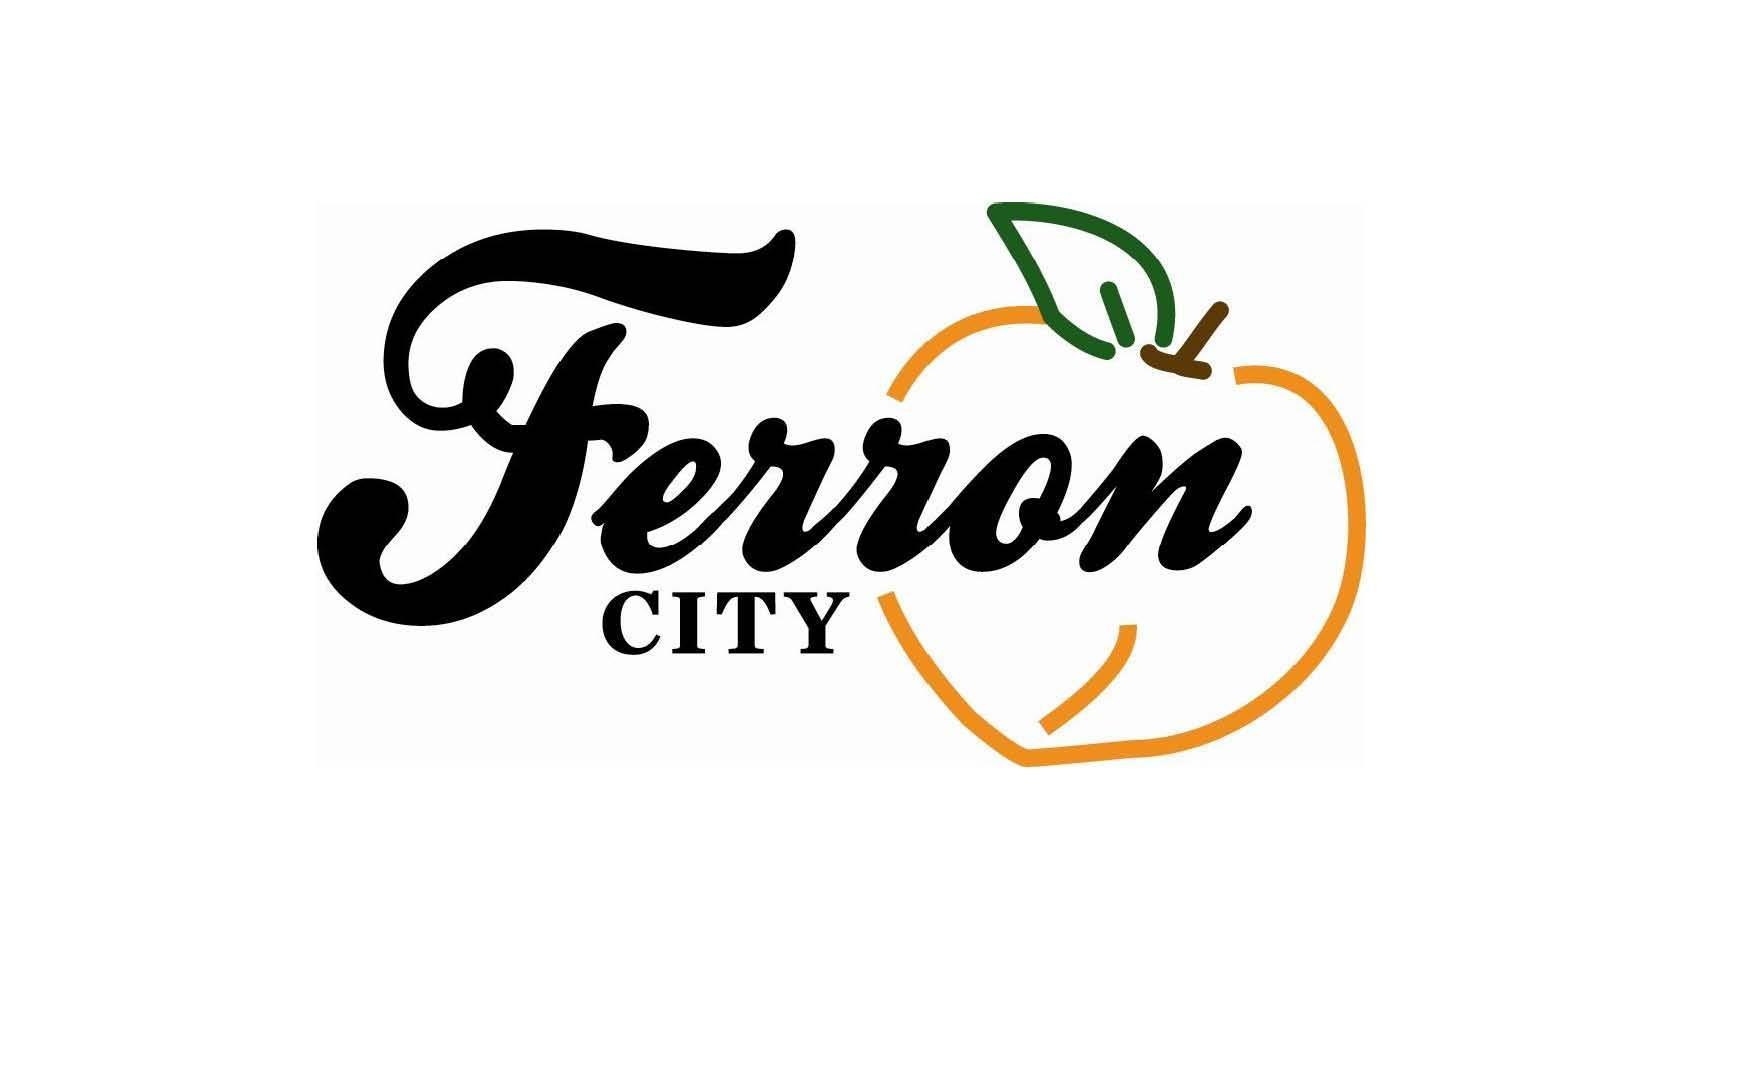 Ferron-City-Logo-2015-1.jpeg